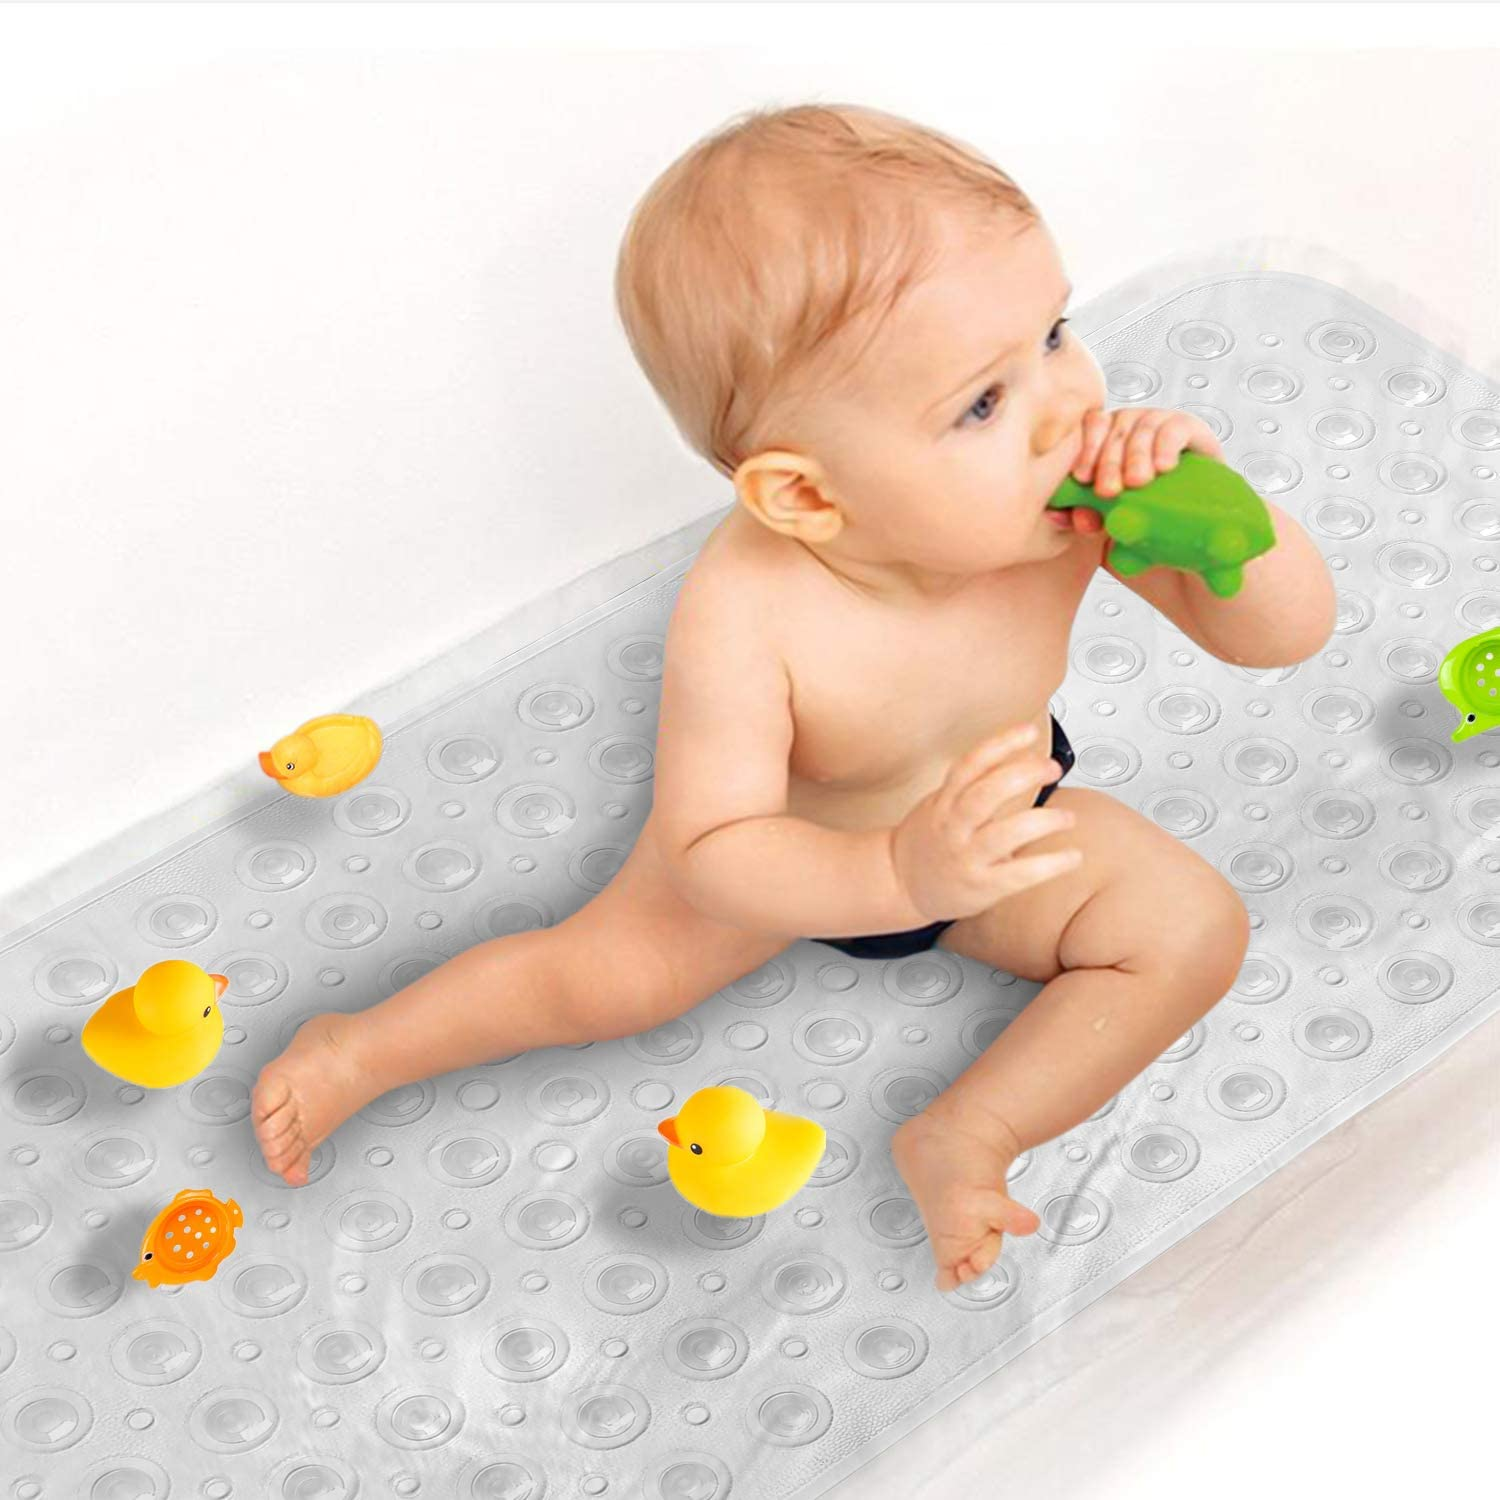 Sheepping Baby Bath Mat Non Slip Extra Long Bathtub Mat for Kids 40 X 16 Inch - Eco Friendly Bath Tub Mat with 200 Big Suction Cups,Machine Washable Shower Mat (Clear): Home & Kitchen